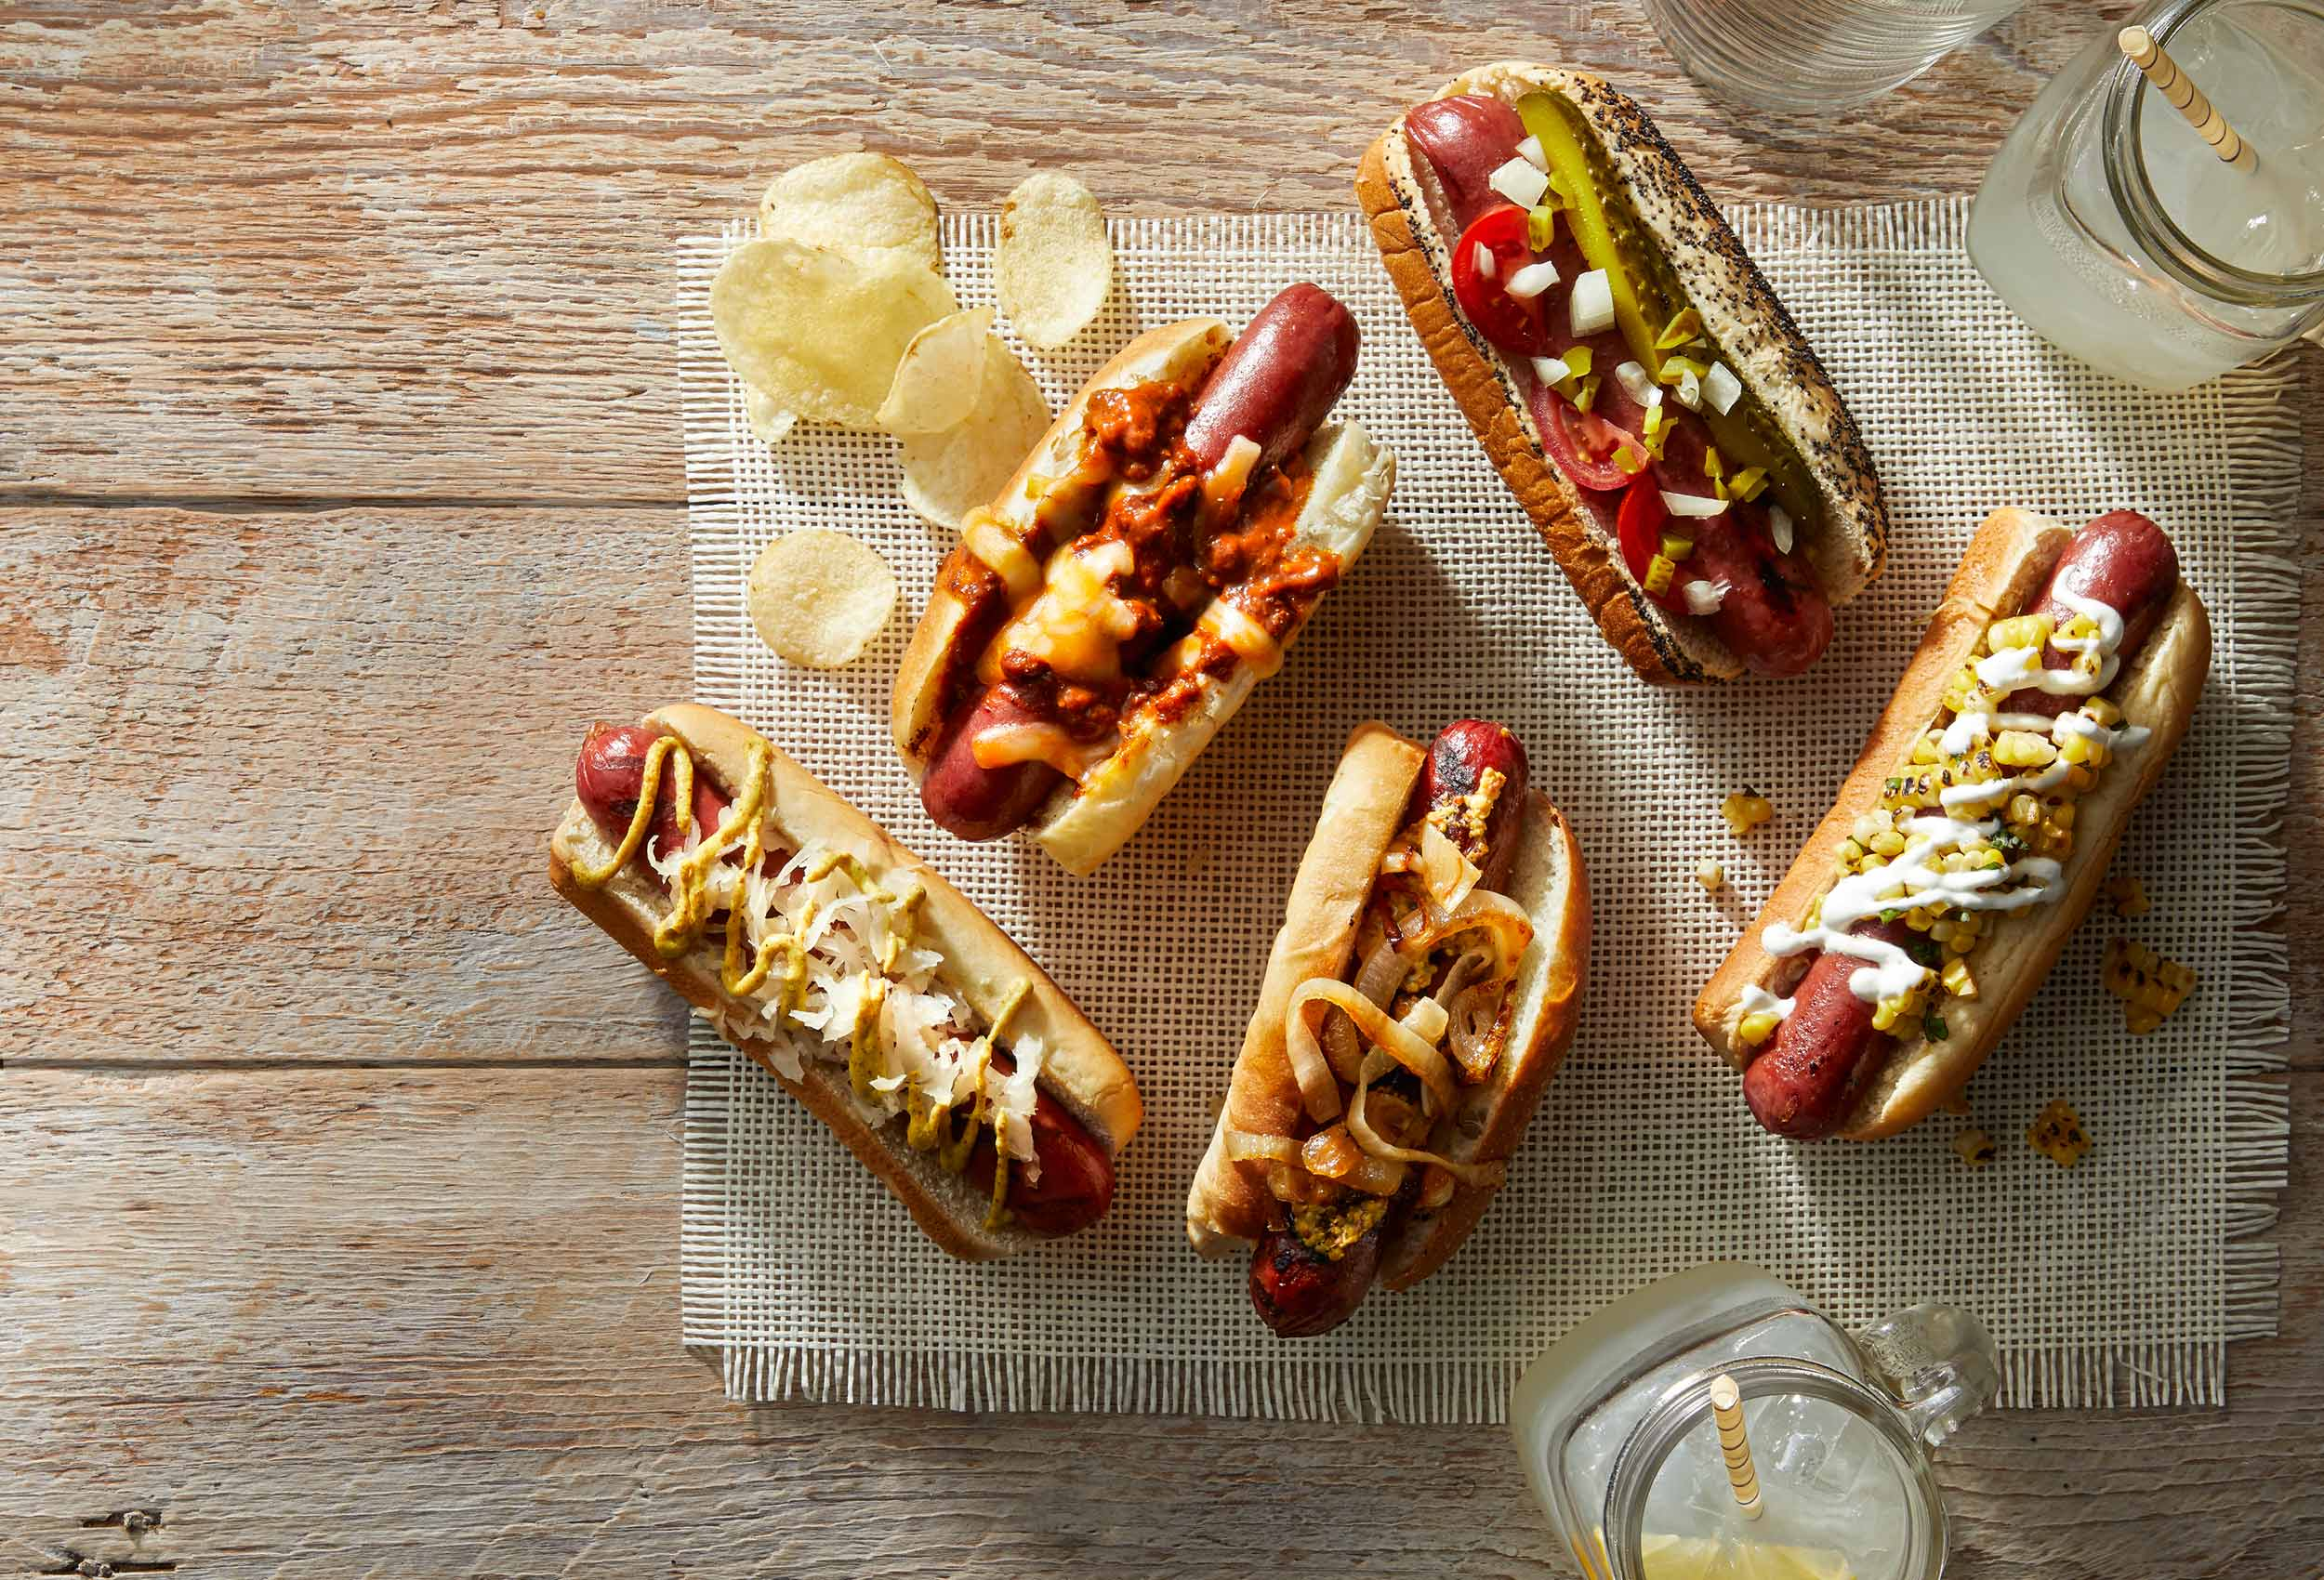 Summer hotdogs on a picnic table